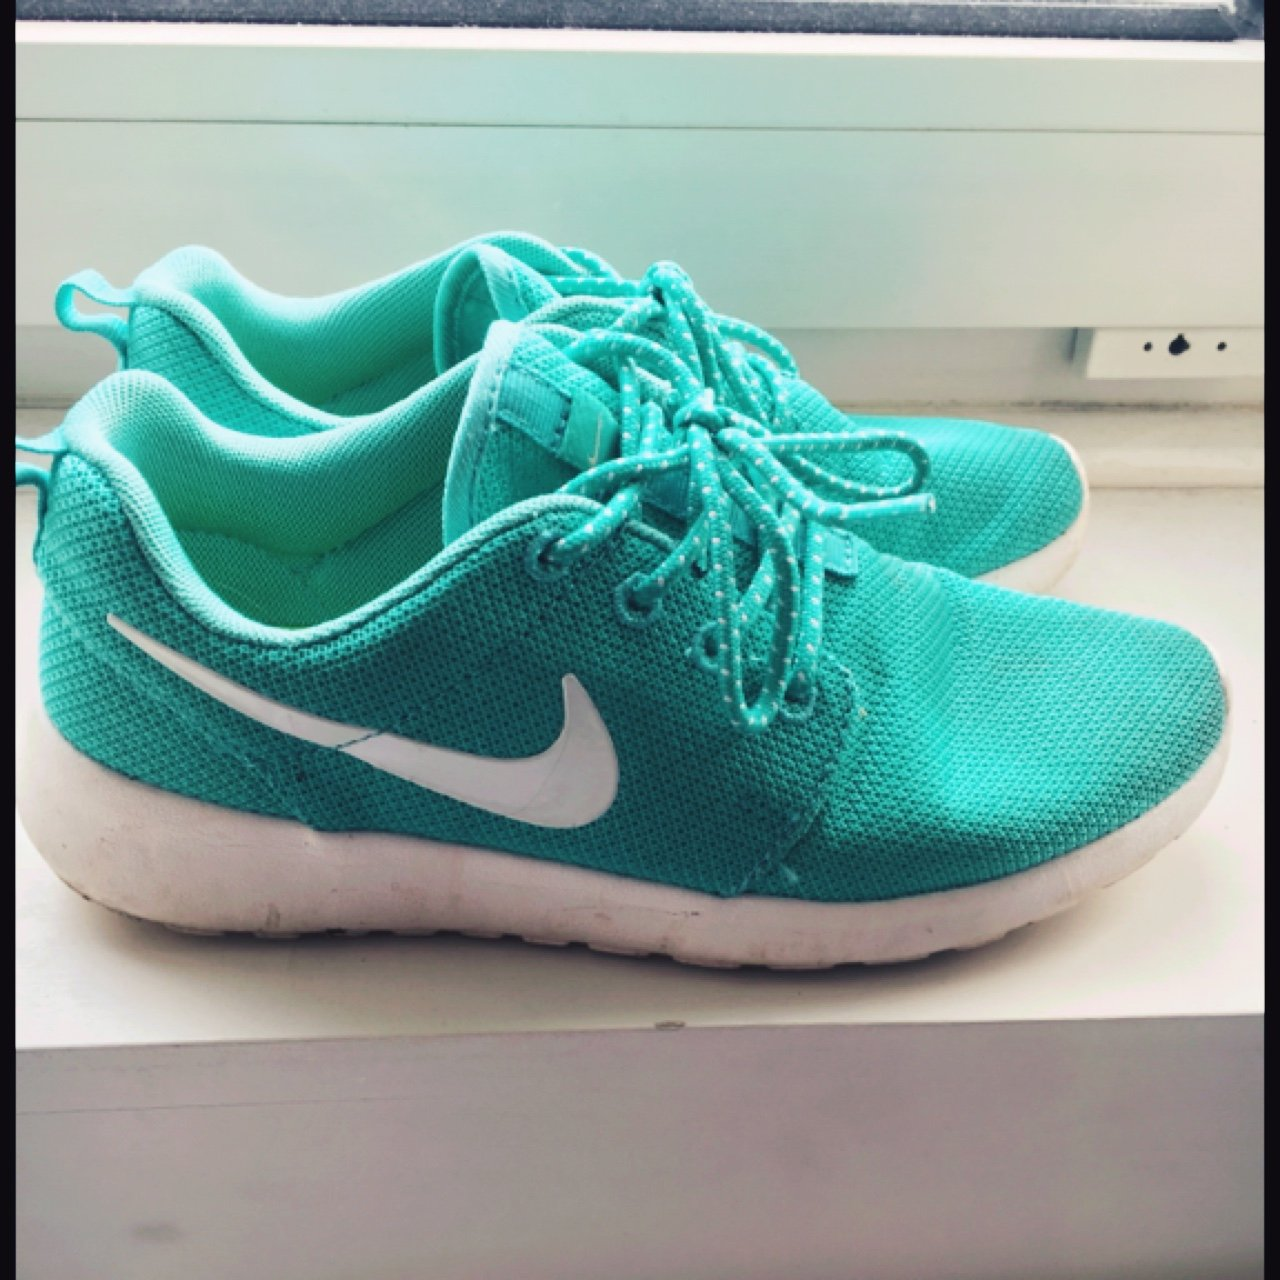 30e8bcc5f50a Nike roshe run size 5.5. Would fit 5 or small 6. Amazing as - Depop